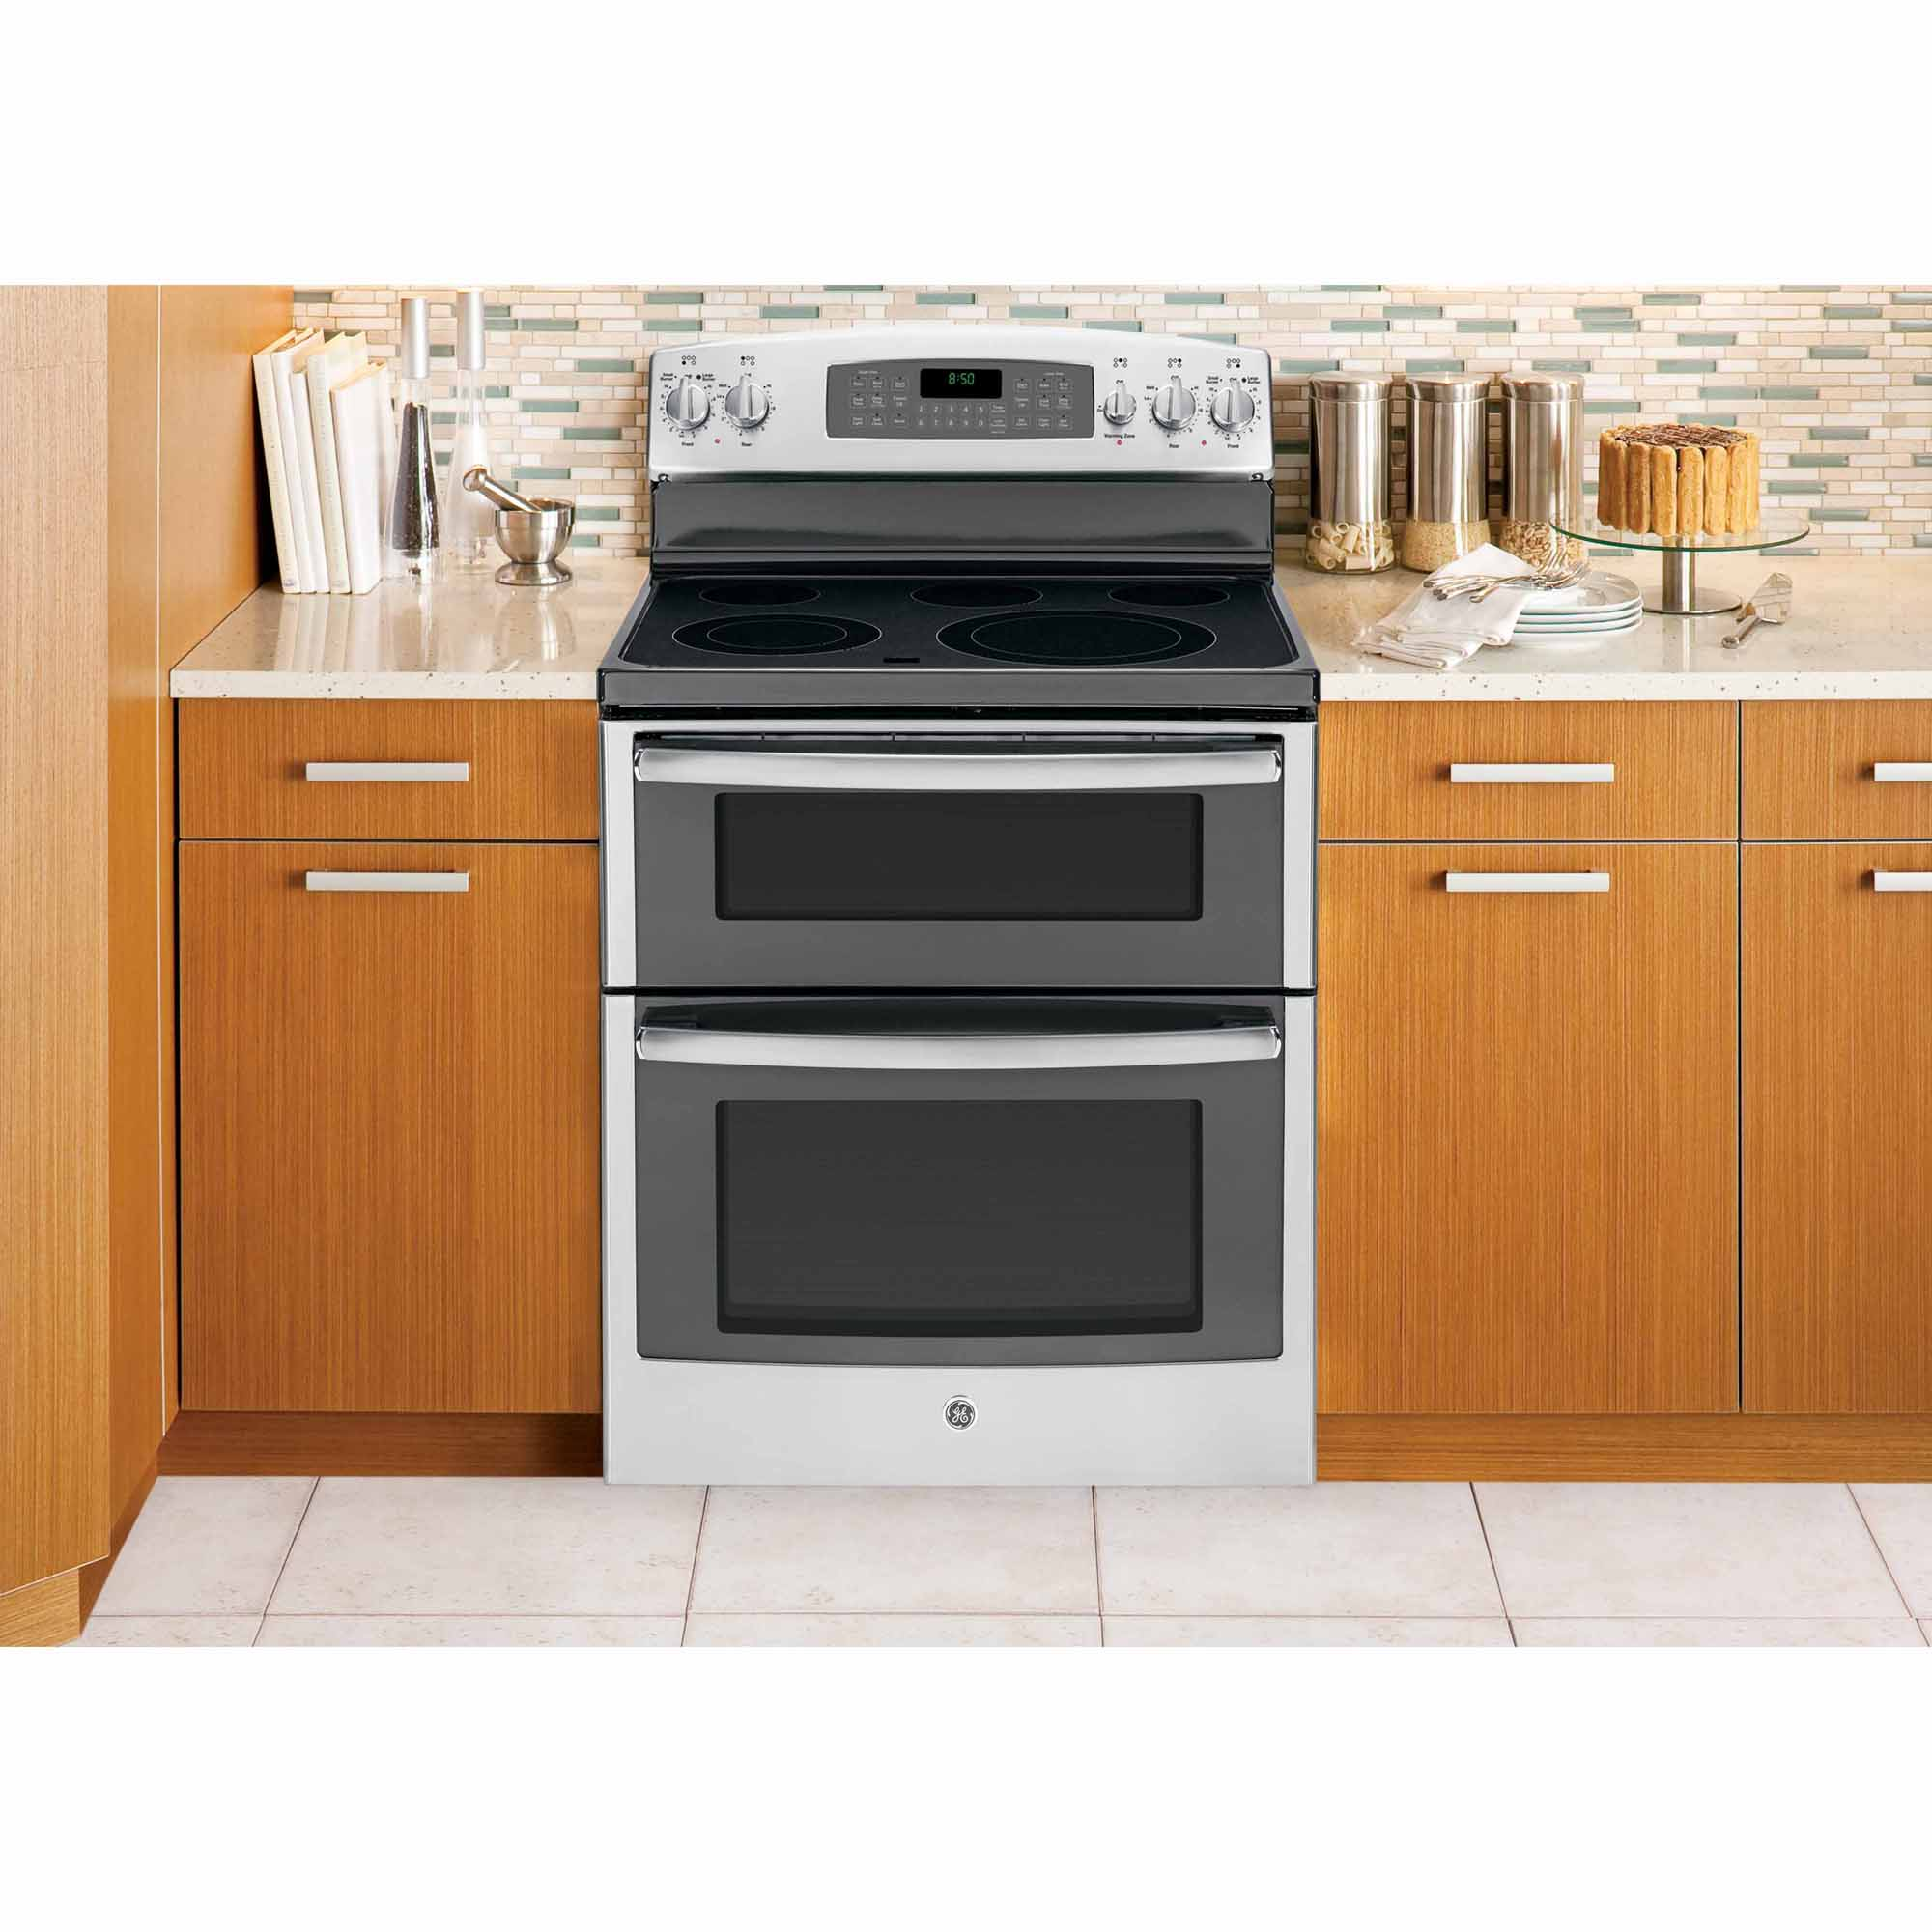 GE Appliances 6.6 cu. ft. Electric Range w/ Double Oven - Stainless